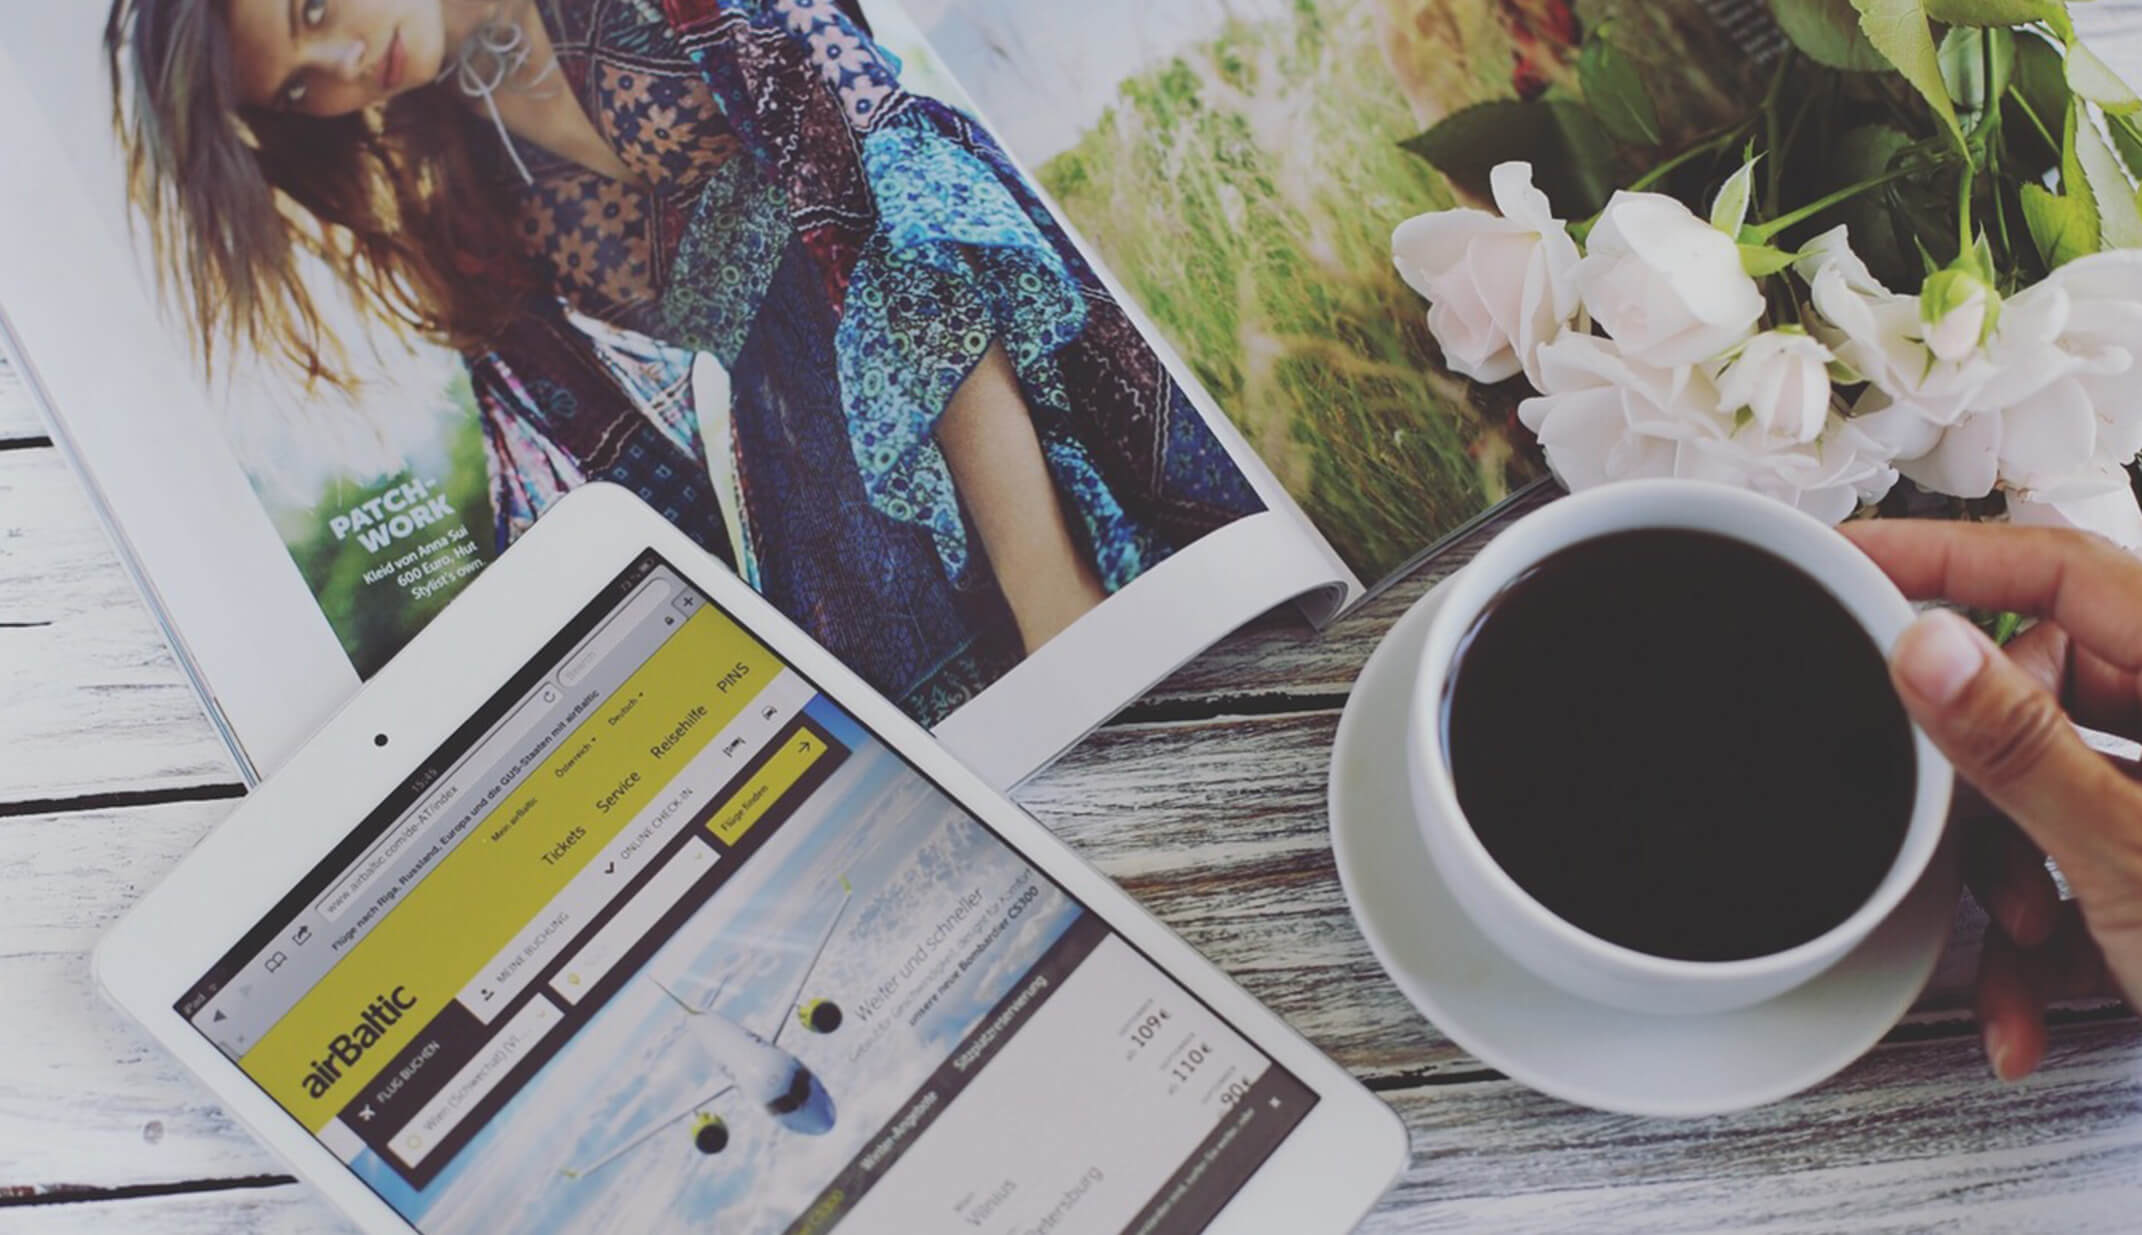 reading magazine fashion coffee passport flowers flat-lay hand fresh white branded app application travel ready planning travel real social UGC photography